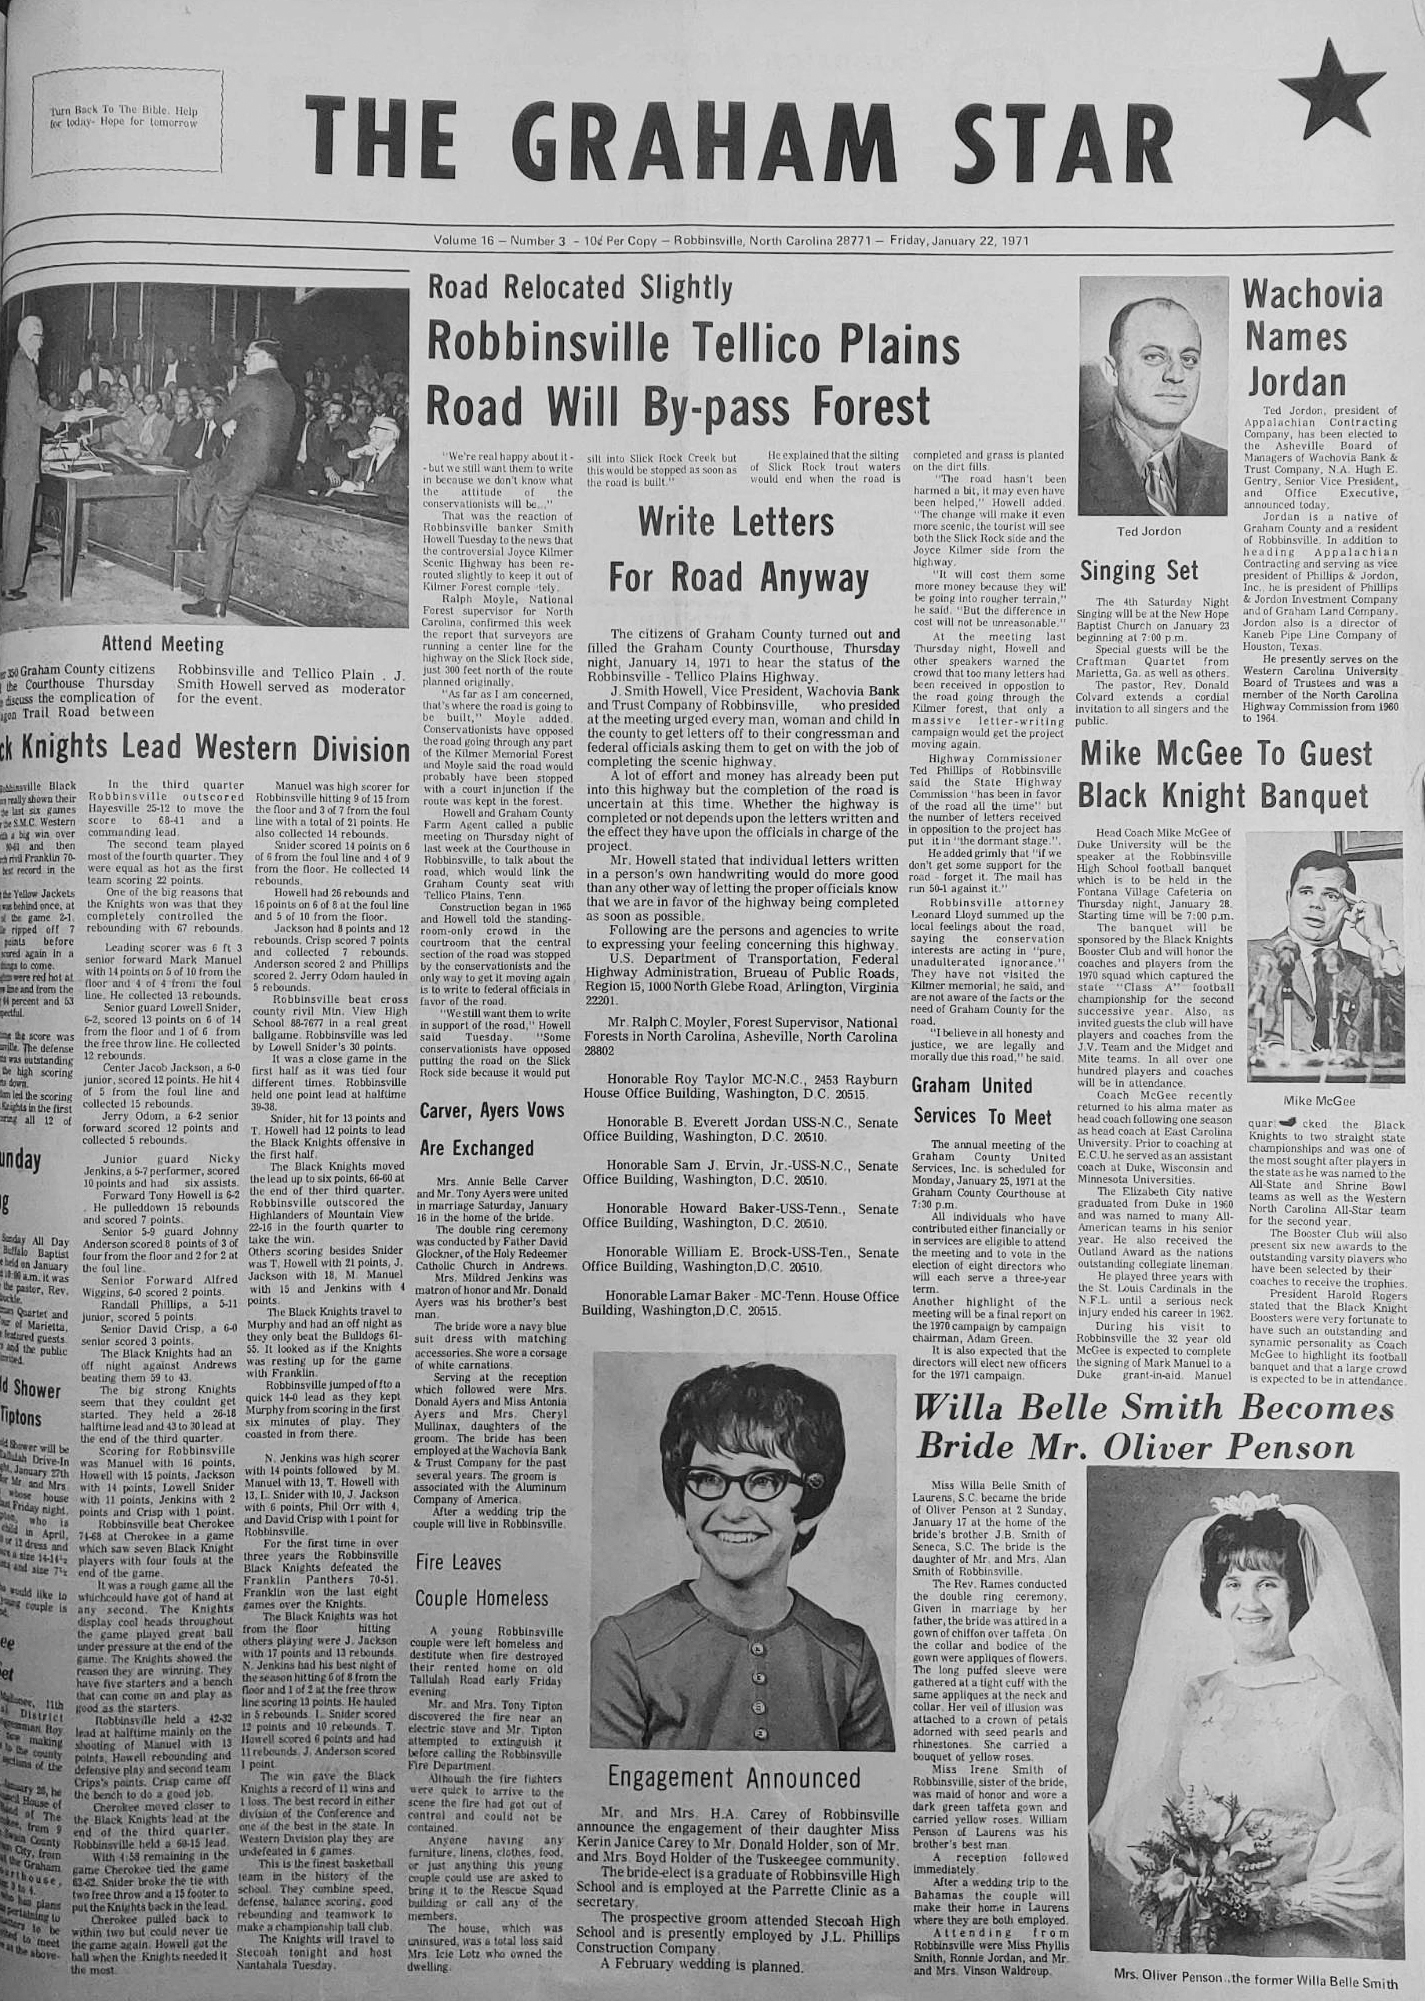 The Graham Star's front page from 50 years ago (Jan. 22, 1971)